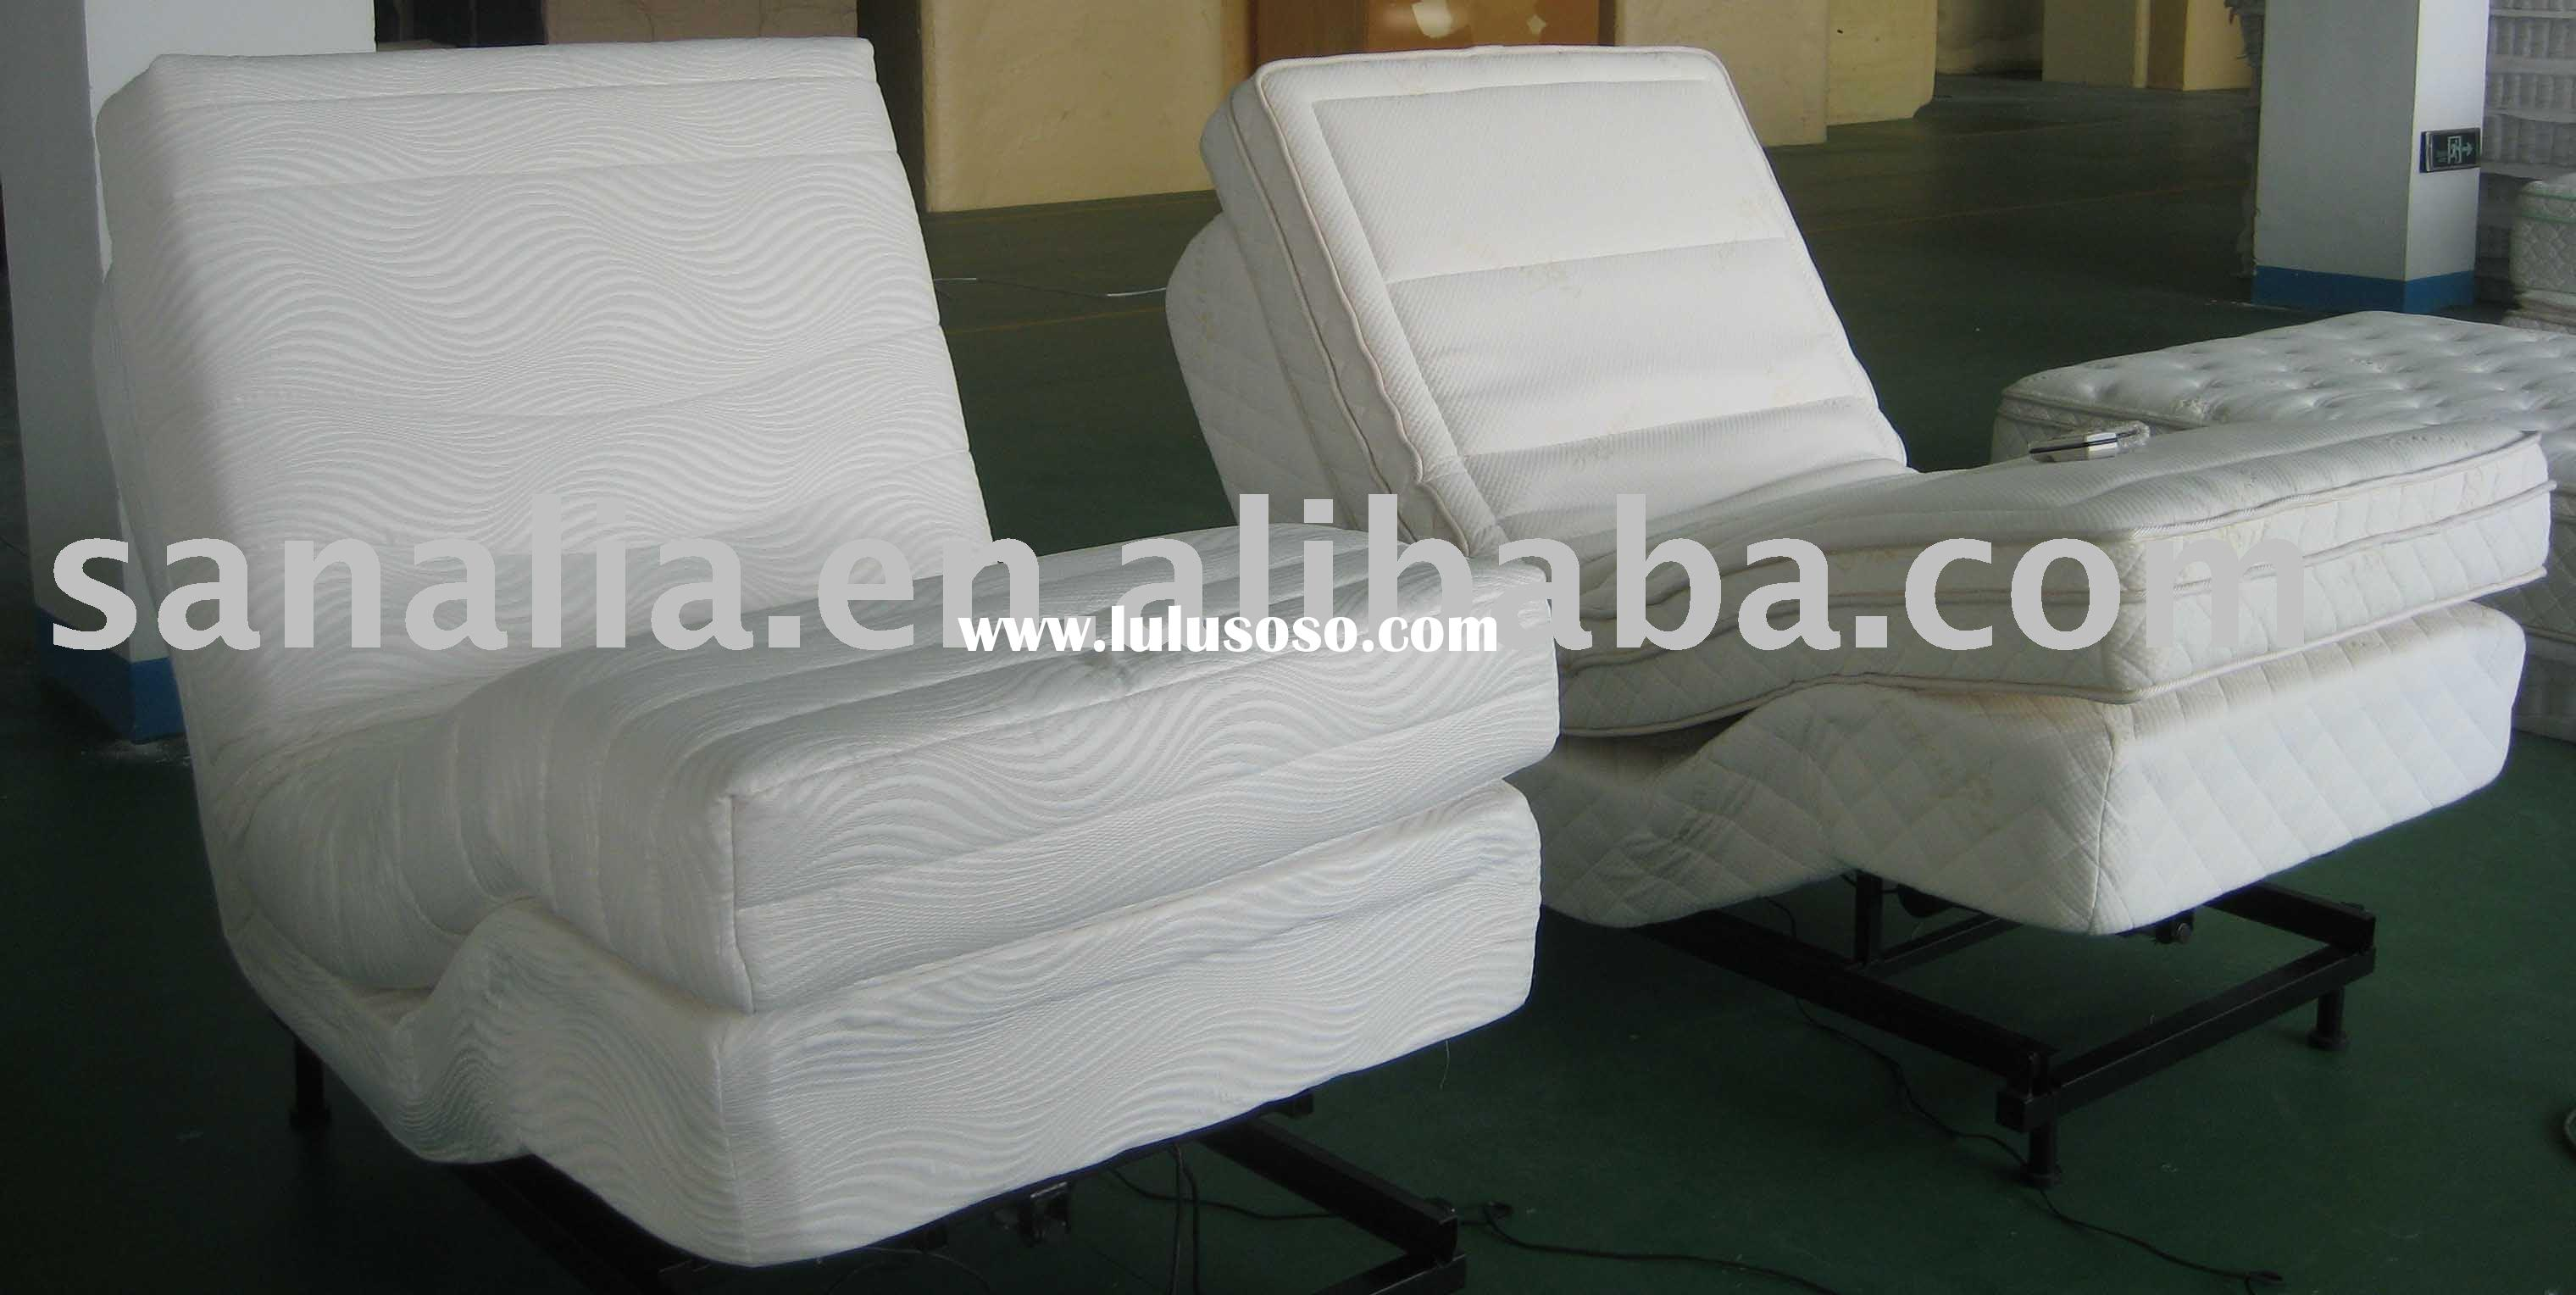 Fold Sofa Foam Bed For Sale Price China Manufacturer